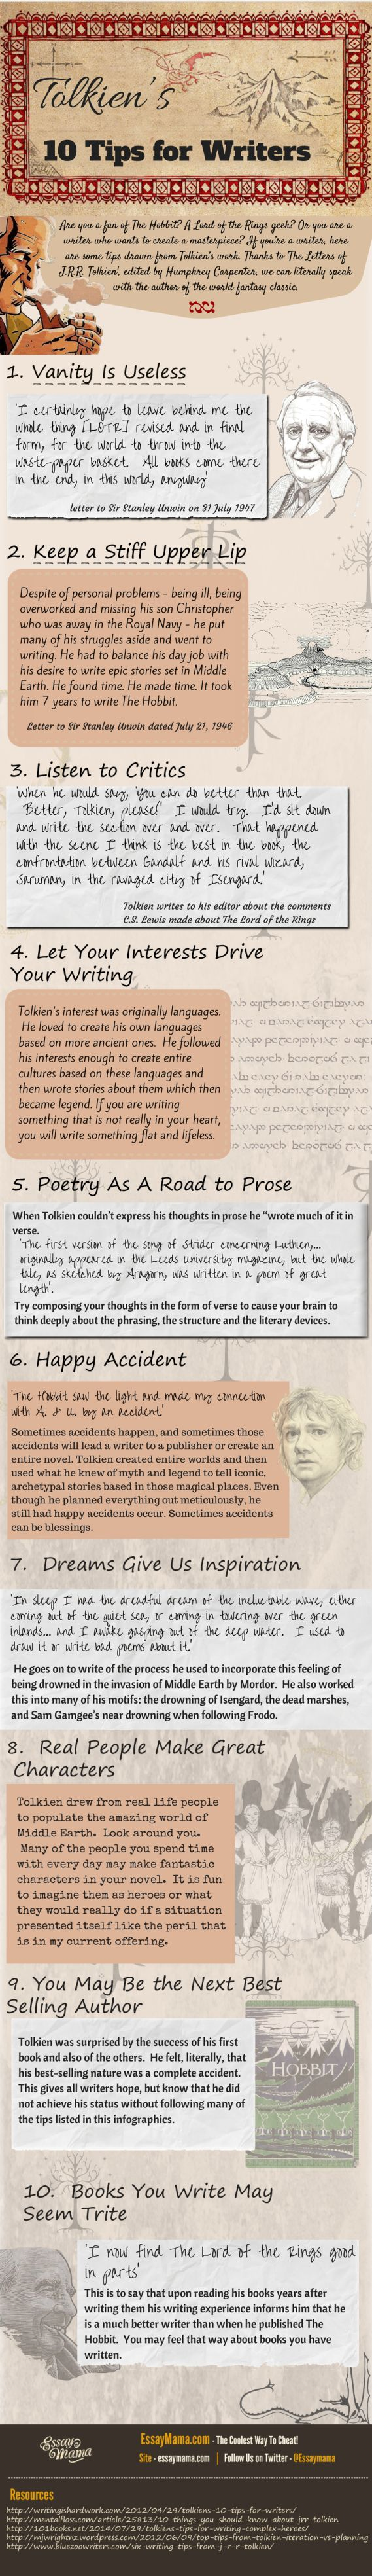 JRR Tolkienu0027s Writing Tips Infographic 612 best